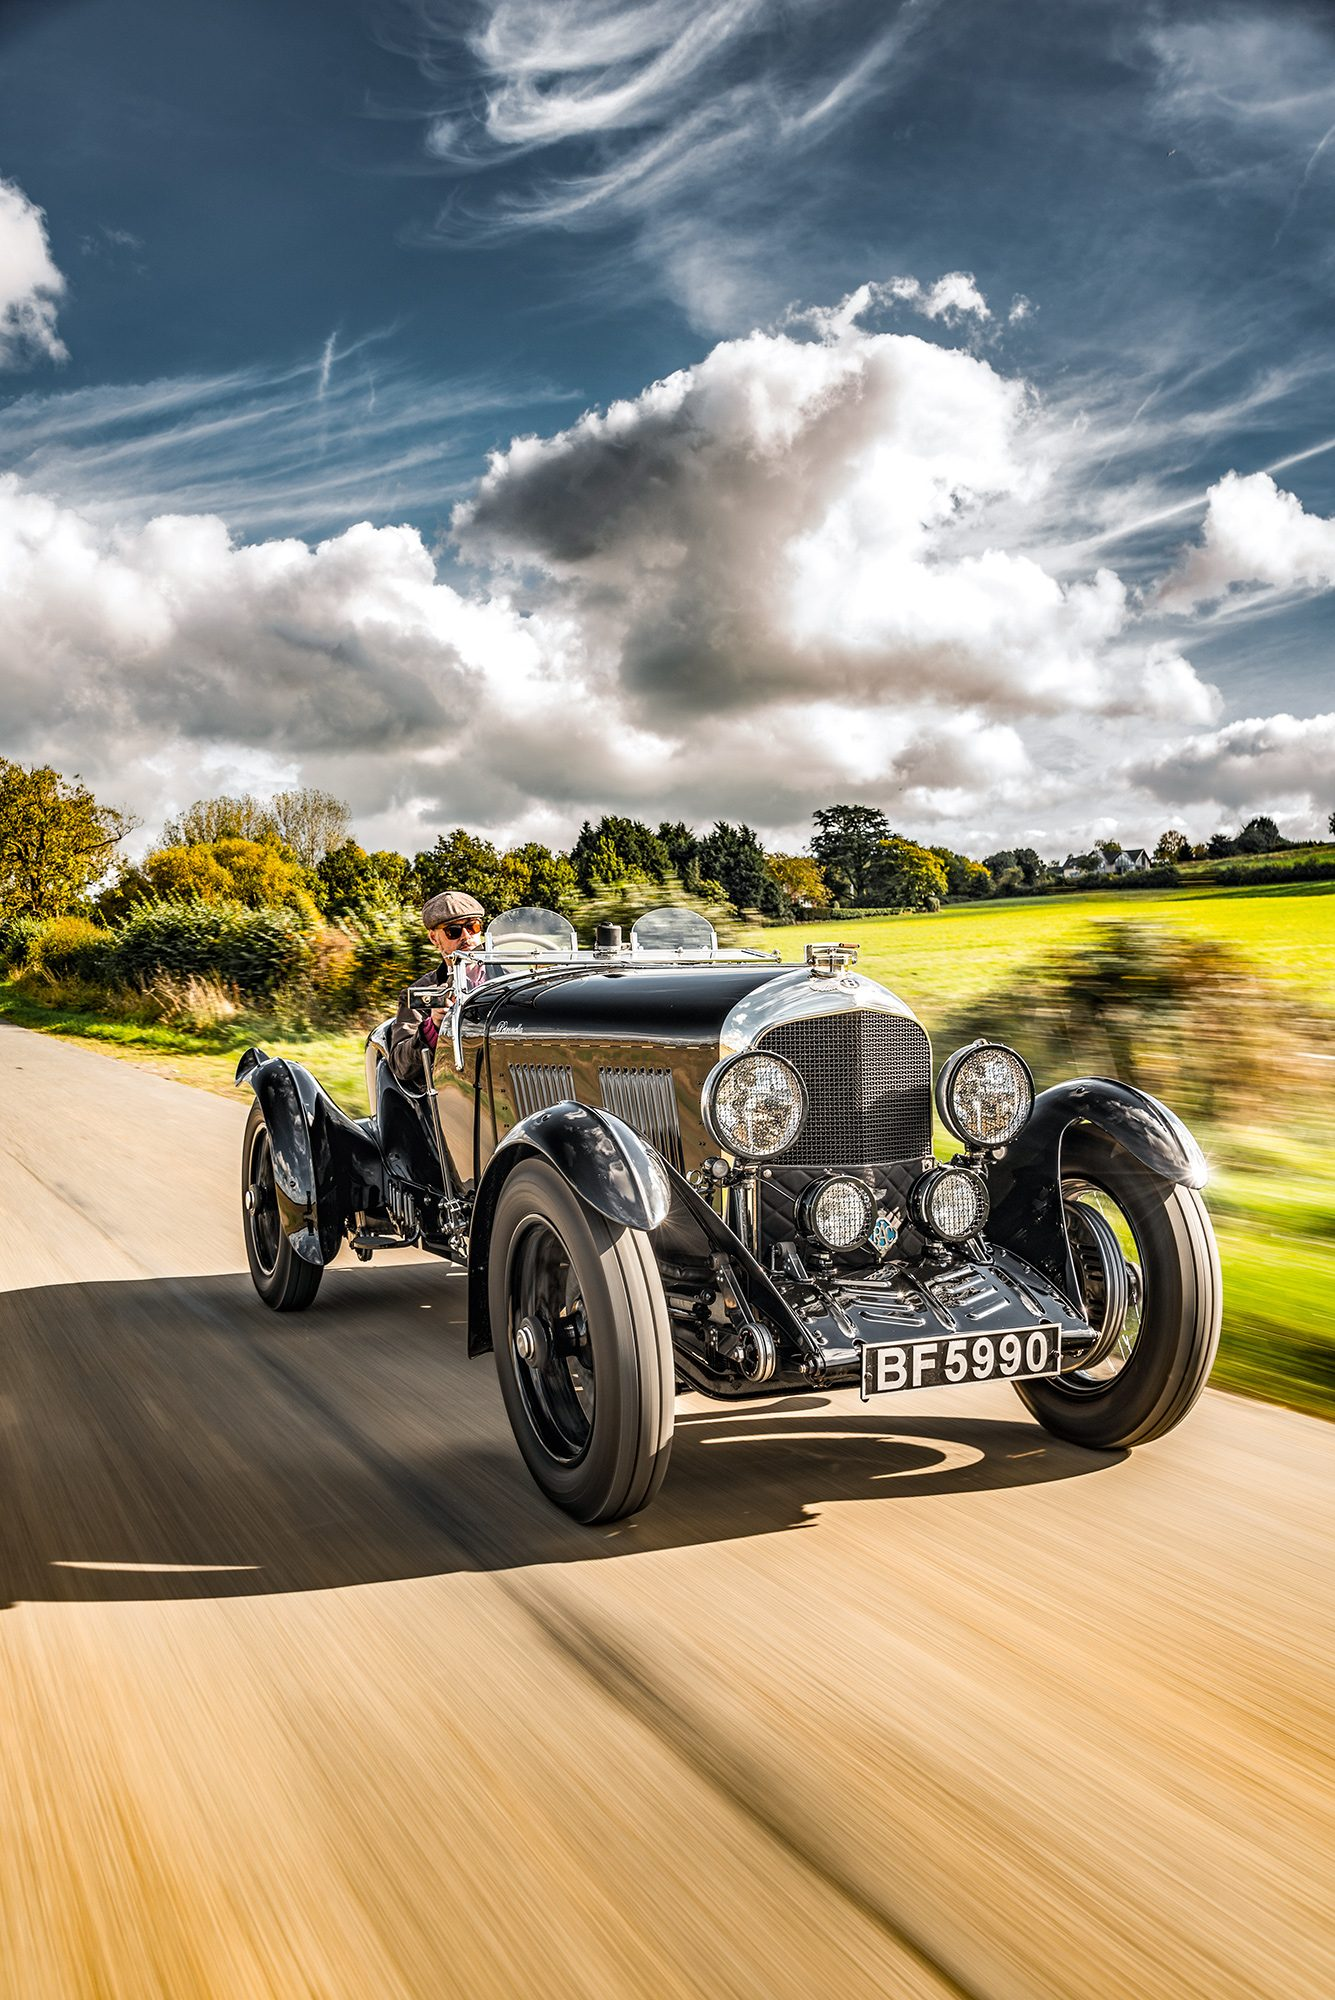 #44, Bentley, Roadster, Woolf Barnato, 3-Liter-Bentley, Vanden Plas